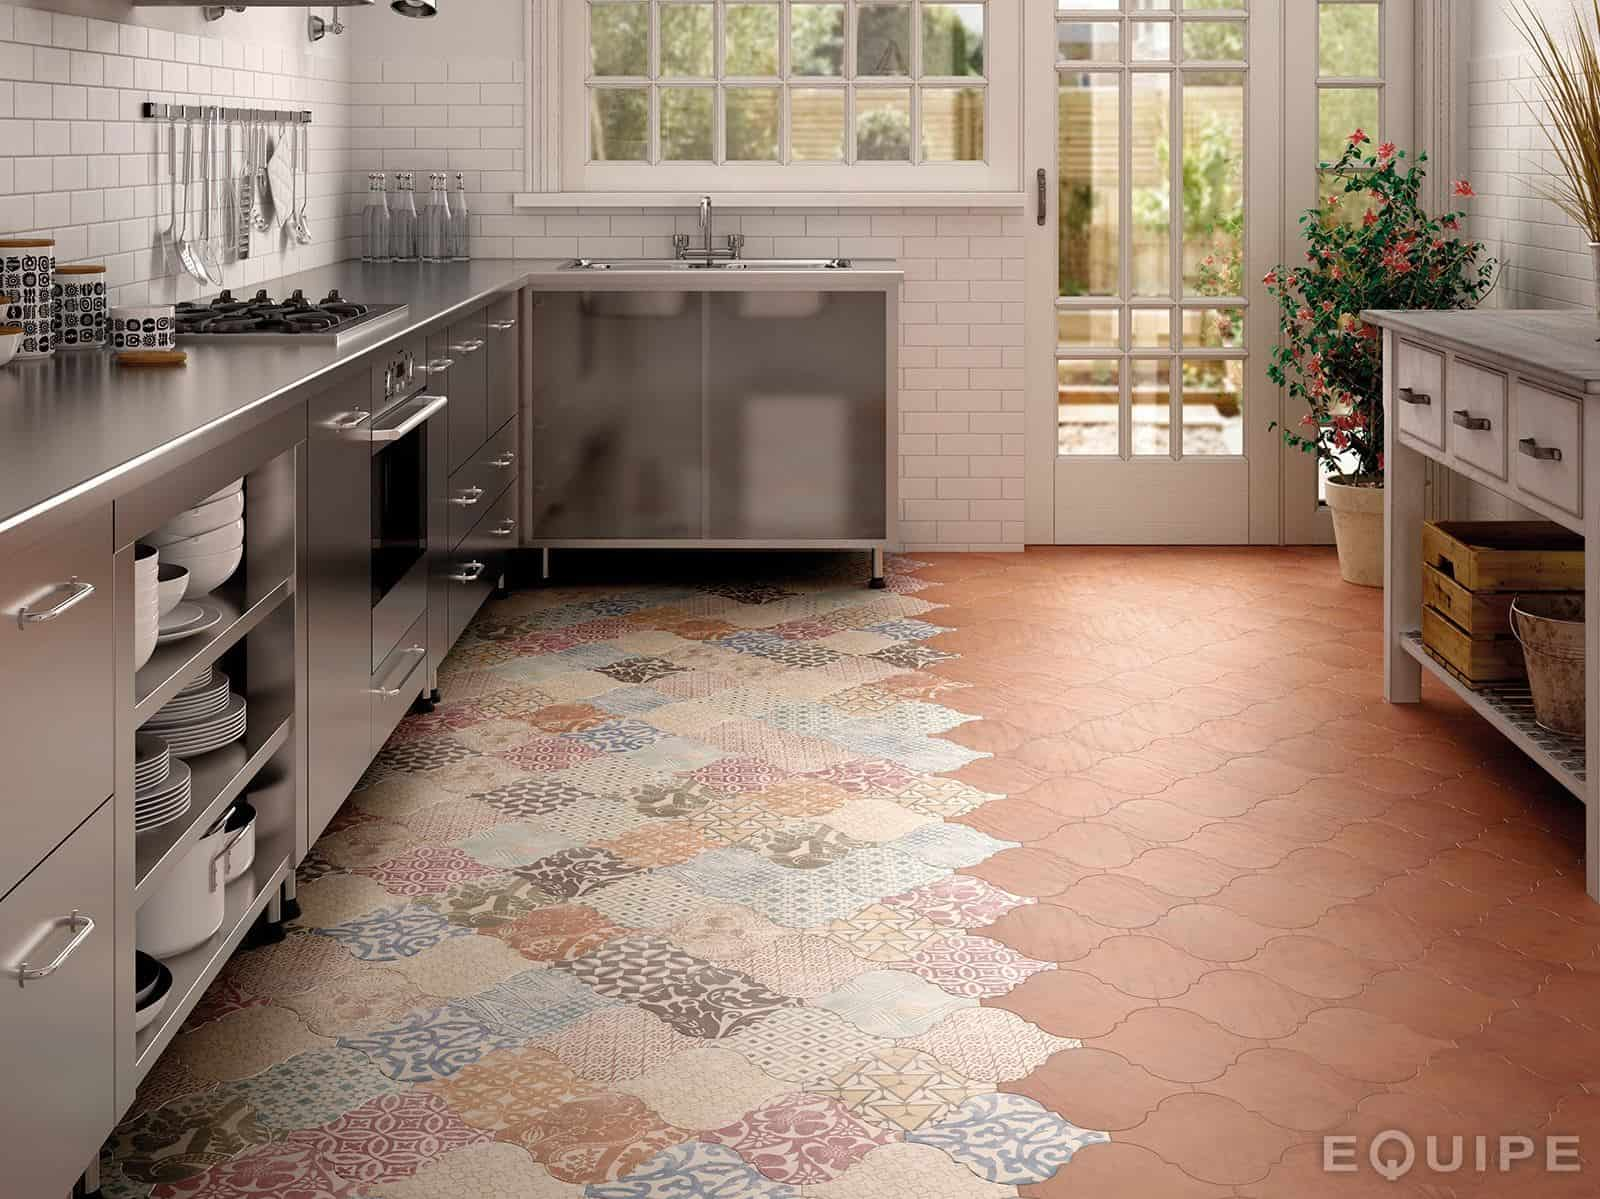 21 arabesque tile ideas for floor wall and backsplash view in gallery arabesque tile kitchen floor patchwork equipe 4g dailygadgetfo Image collections